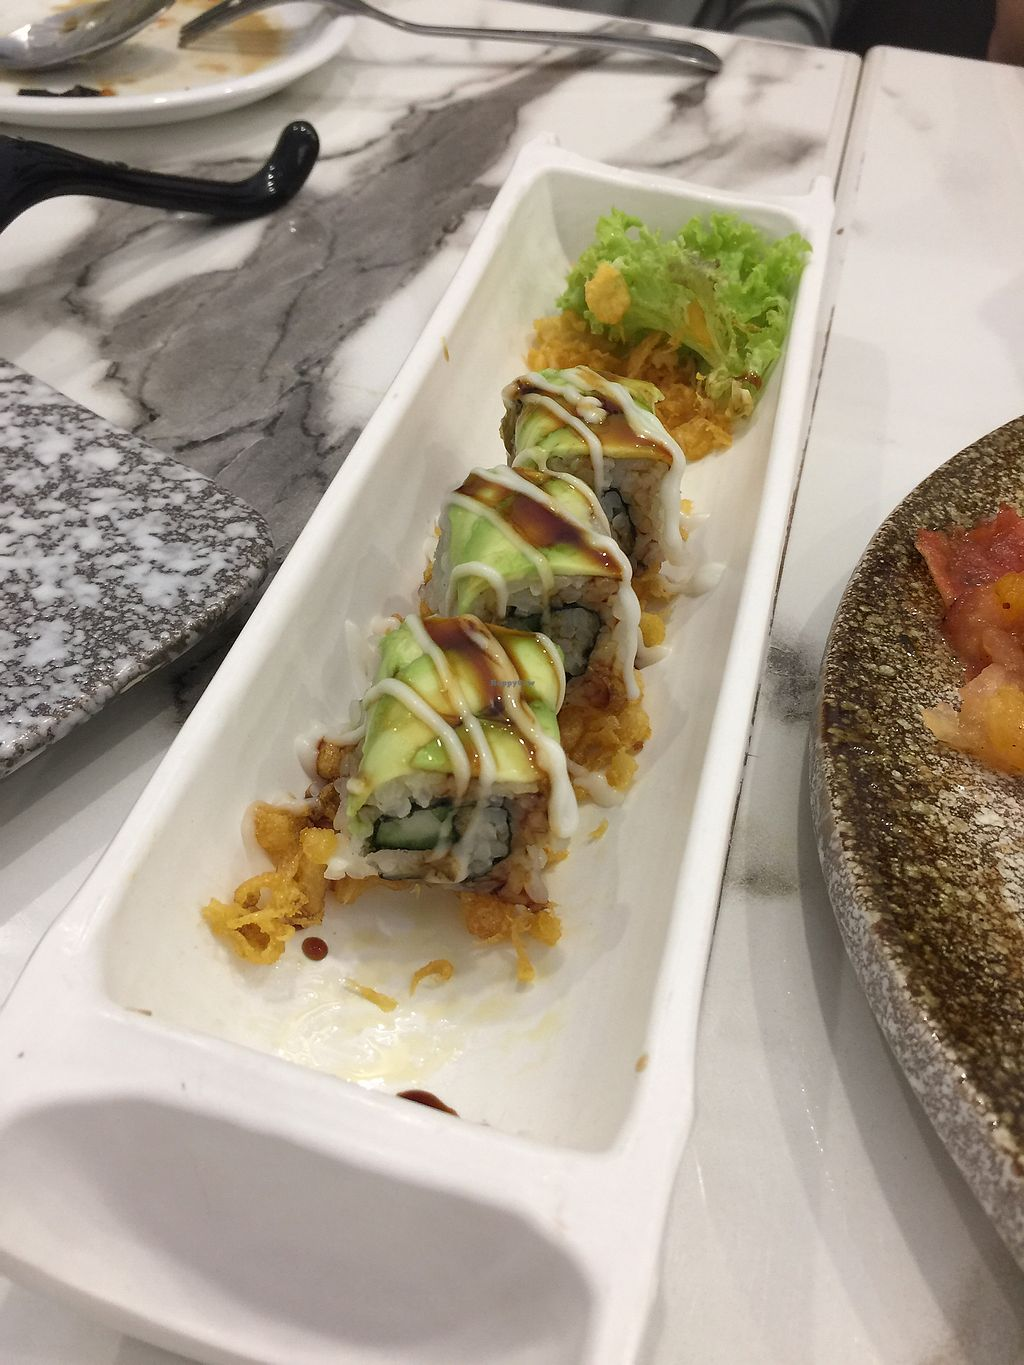 "Photo of Sun Vegetarian Cuisine  by <a href=""/members/profile/yenyenlow"">yenyenlow</a> <br/>Avocado sushi roll (not vegan, mayonnaise contains milk) <br/> February 20, 2018  - <a href='/contact/abuse/image/81561/361653'>Report</a>"